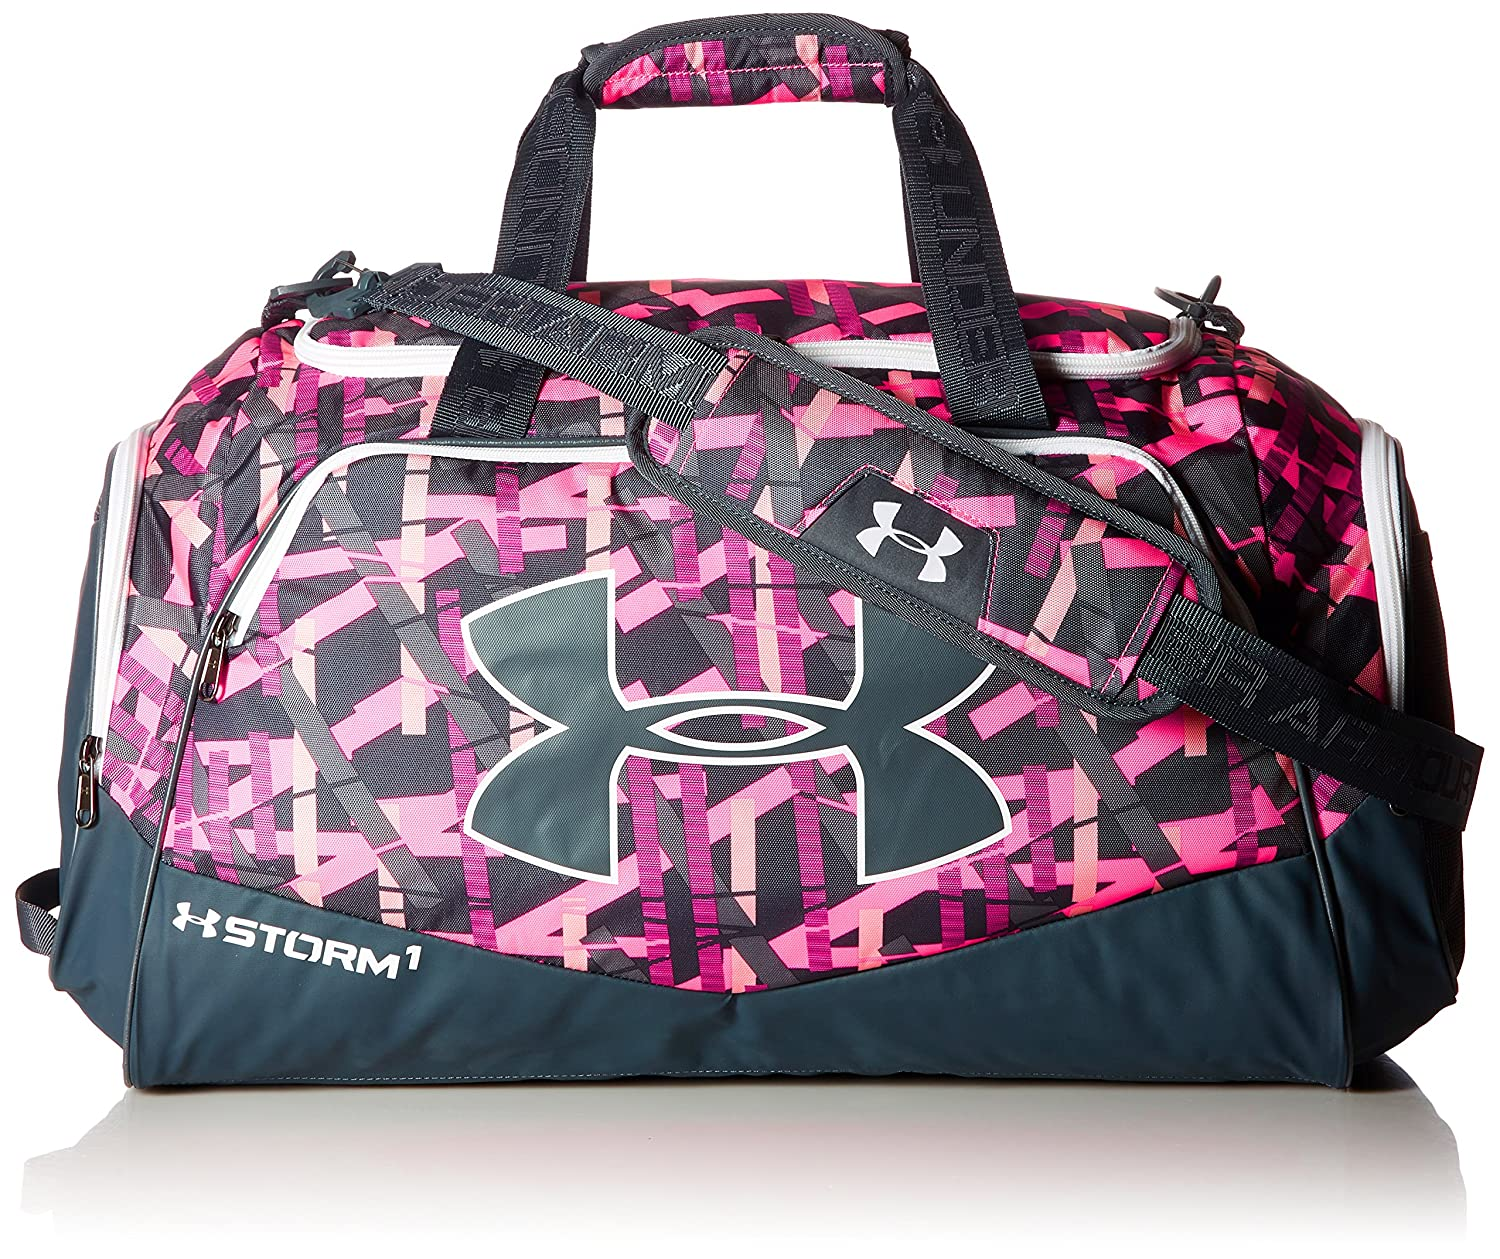 2b29d61a81 Amazon.com  Under Armour Storm Undeniable II Medium Duffle  Sports    Outdoors